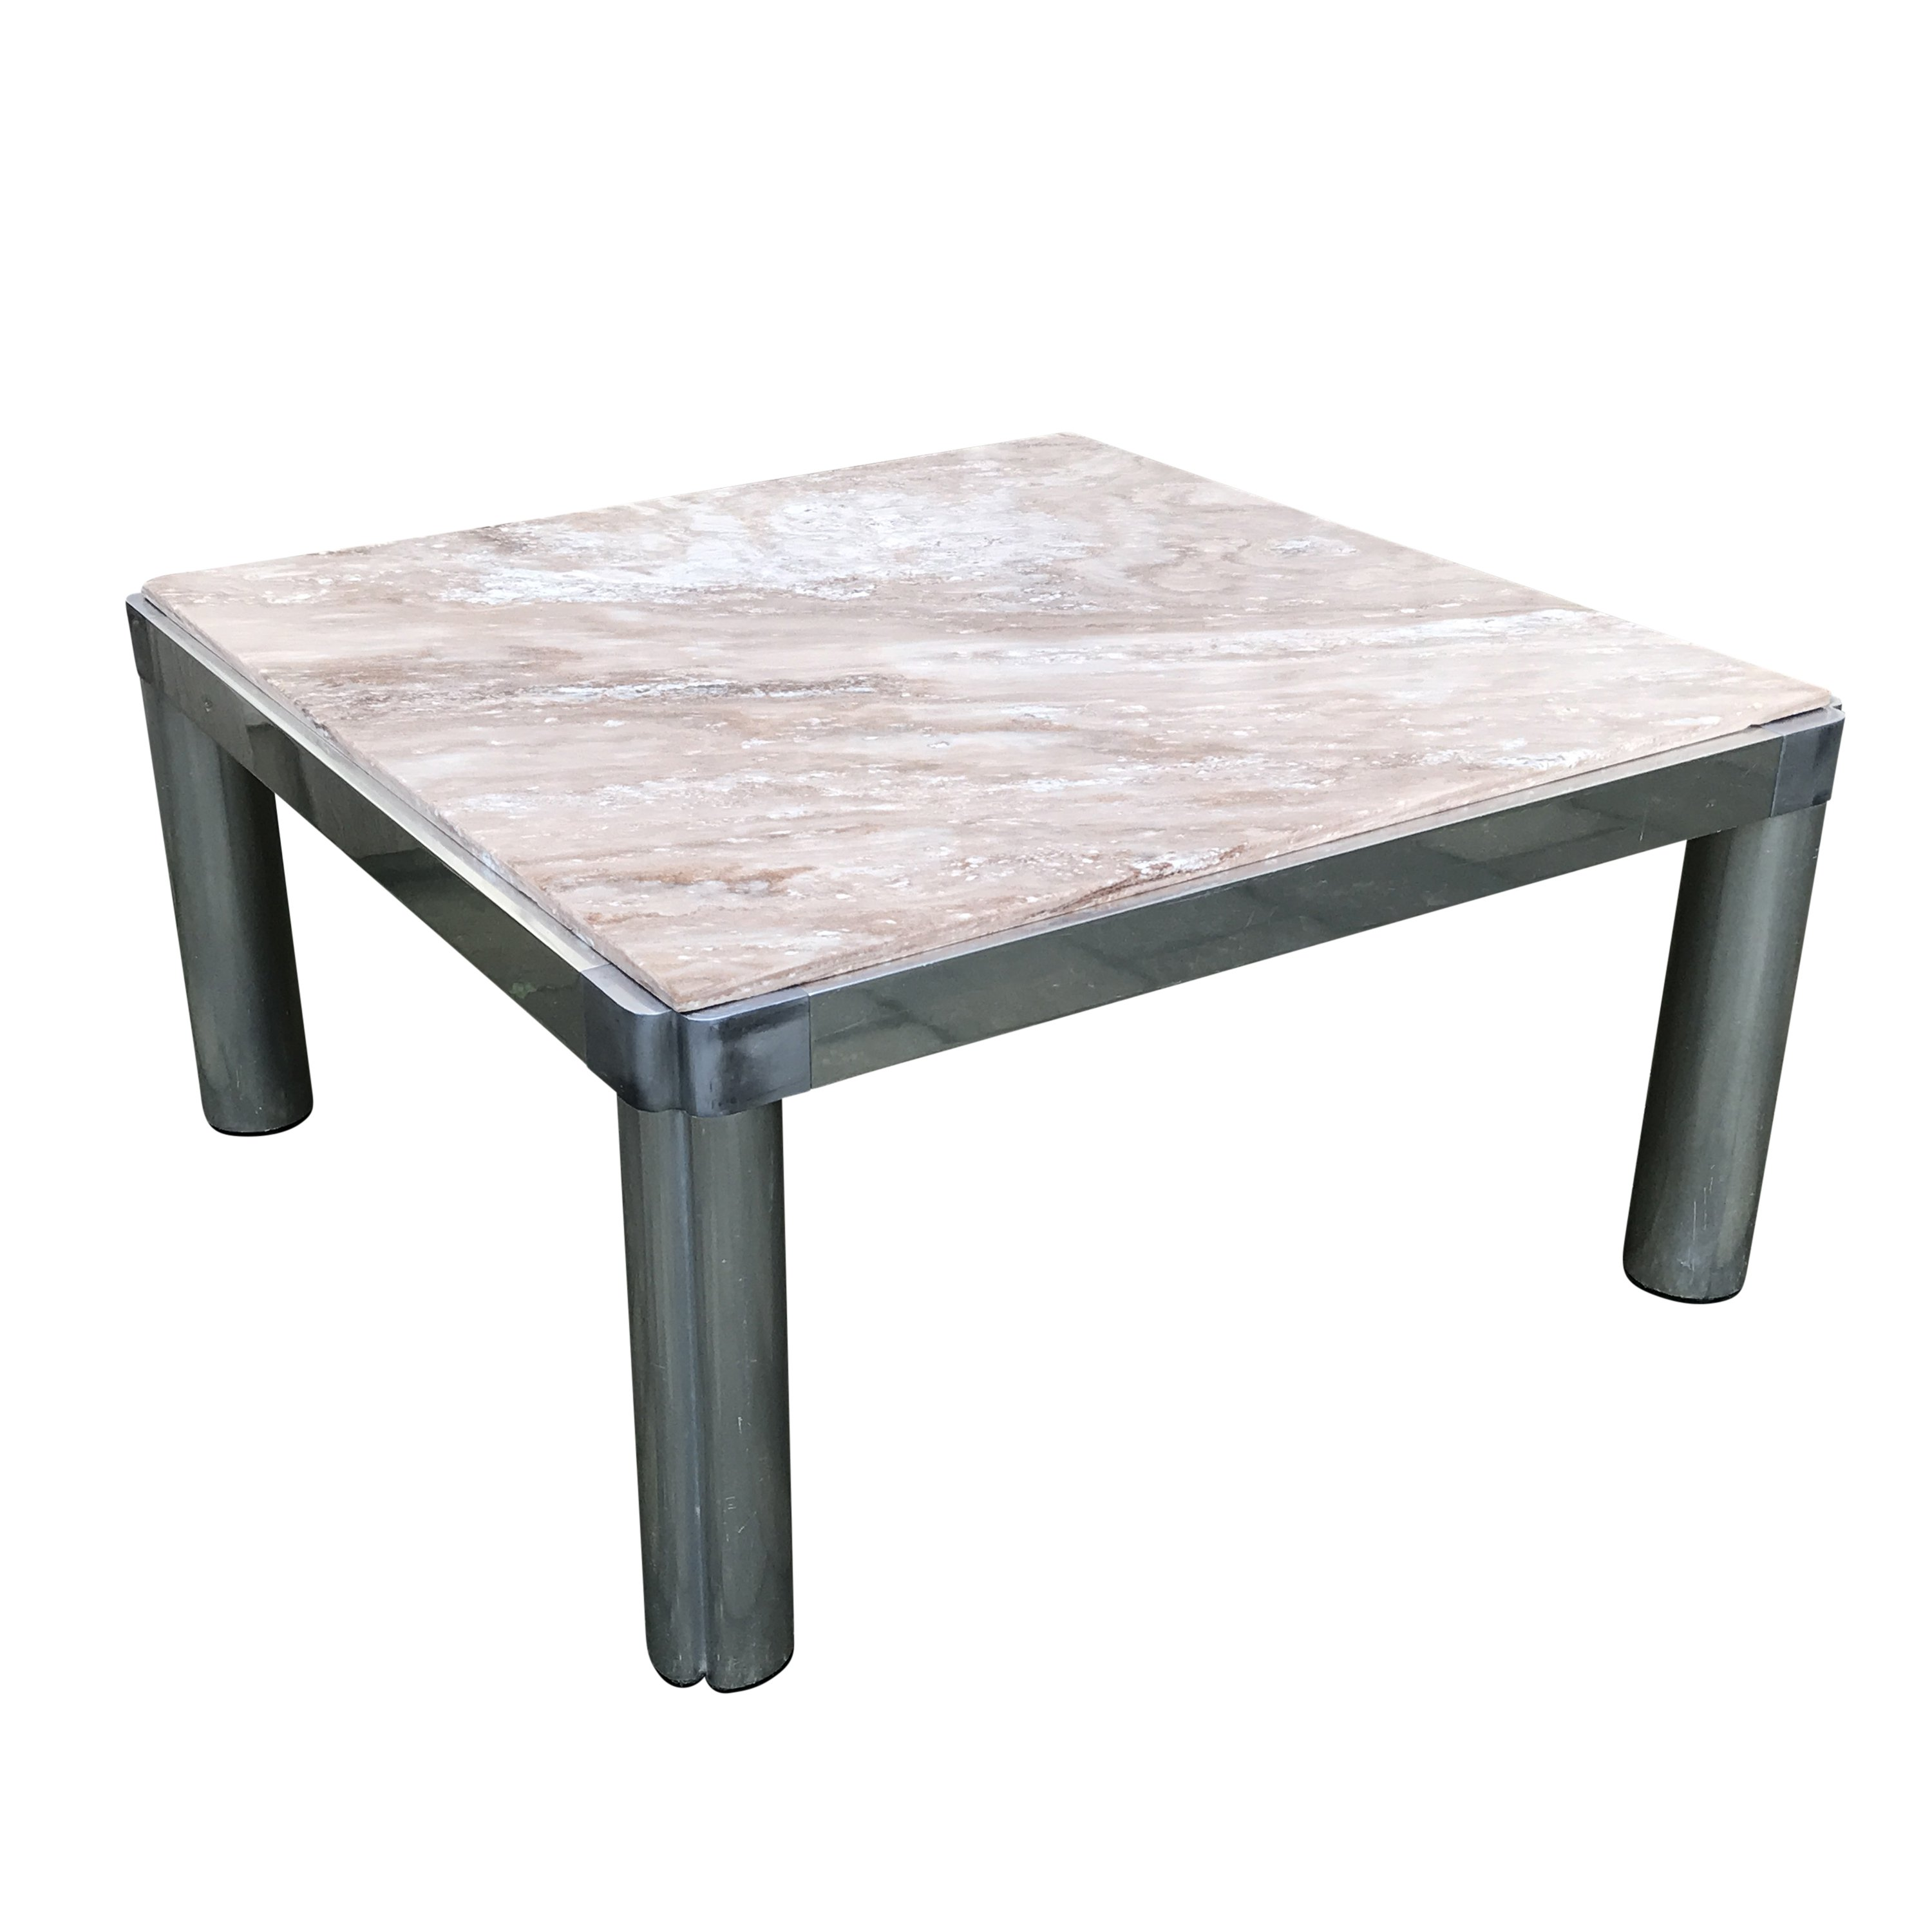 Model 100 Marble Coffee Table By Kho Liang Ie For Artifort 1970s